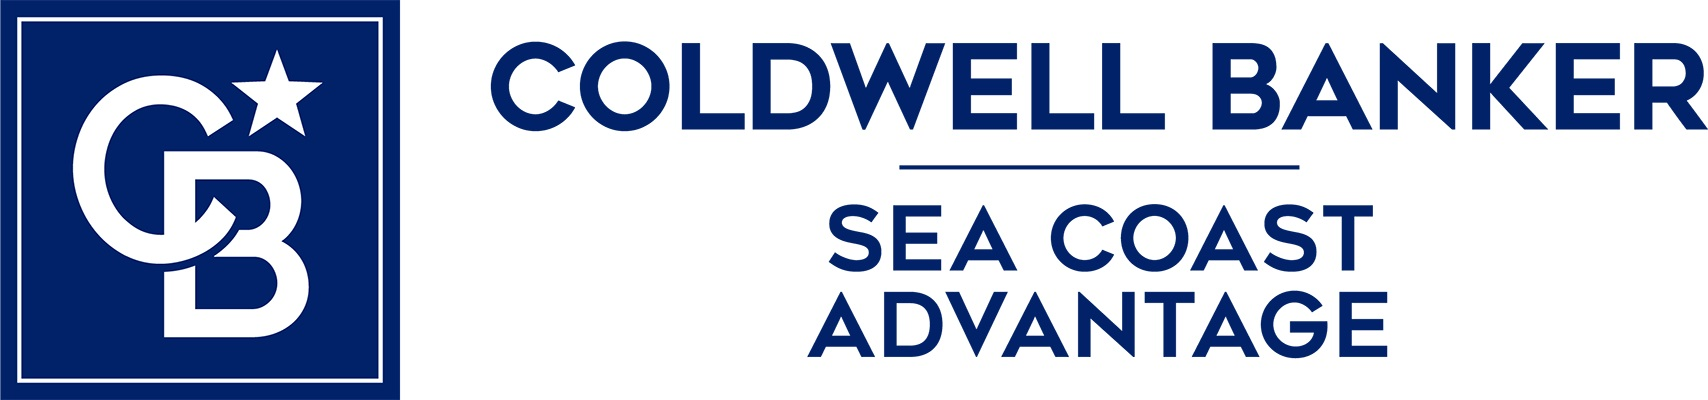 Carmen Spicer - Coldwell Banker Sea Coast Advantage Realty Logo